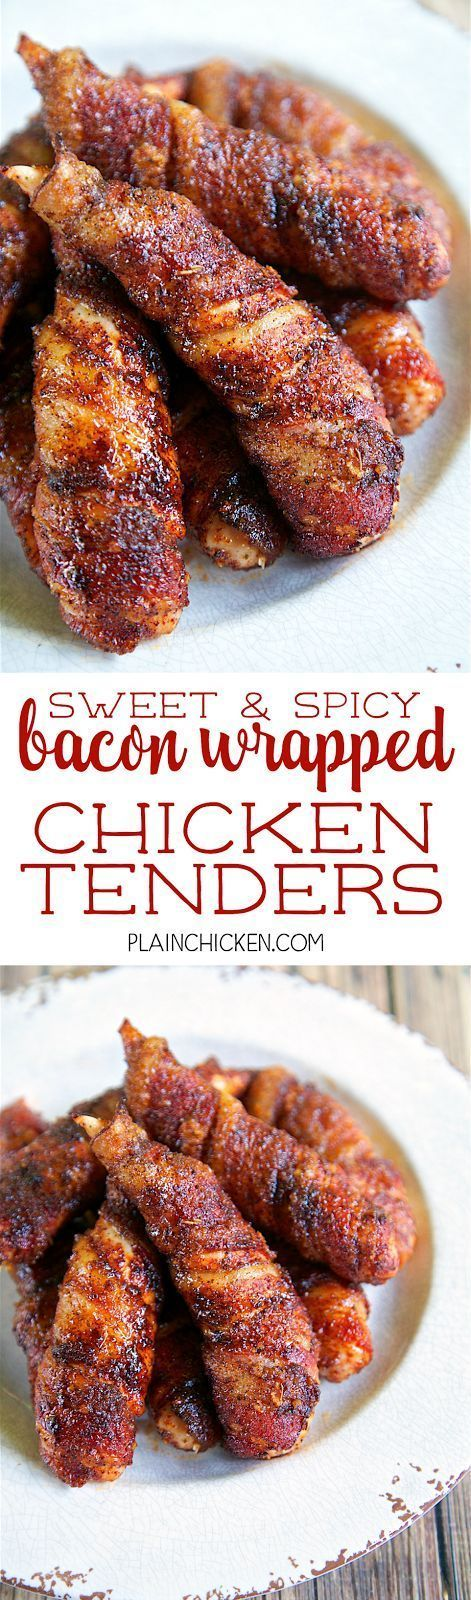 Sweet & Spicy Bacon Wrapped Chicken Tenders - one of the best things we ate last week. Only 4 simple ingredients - chicken, bacon, brown sugar and chili powder. They only take about 5 minutes to make and are ready to eat in under 30 minutes. Sweet and sal